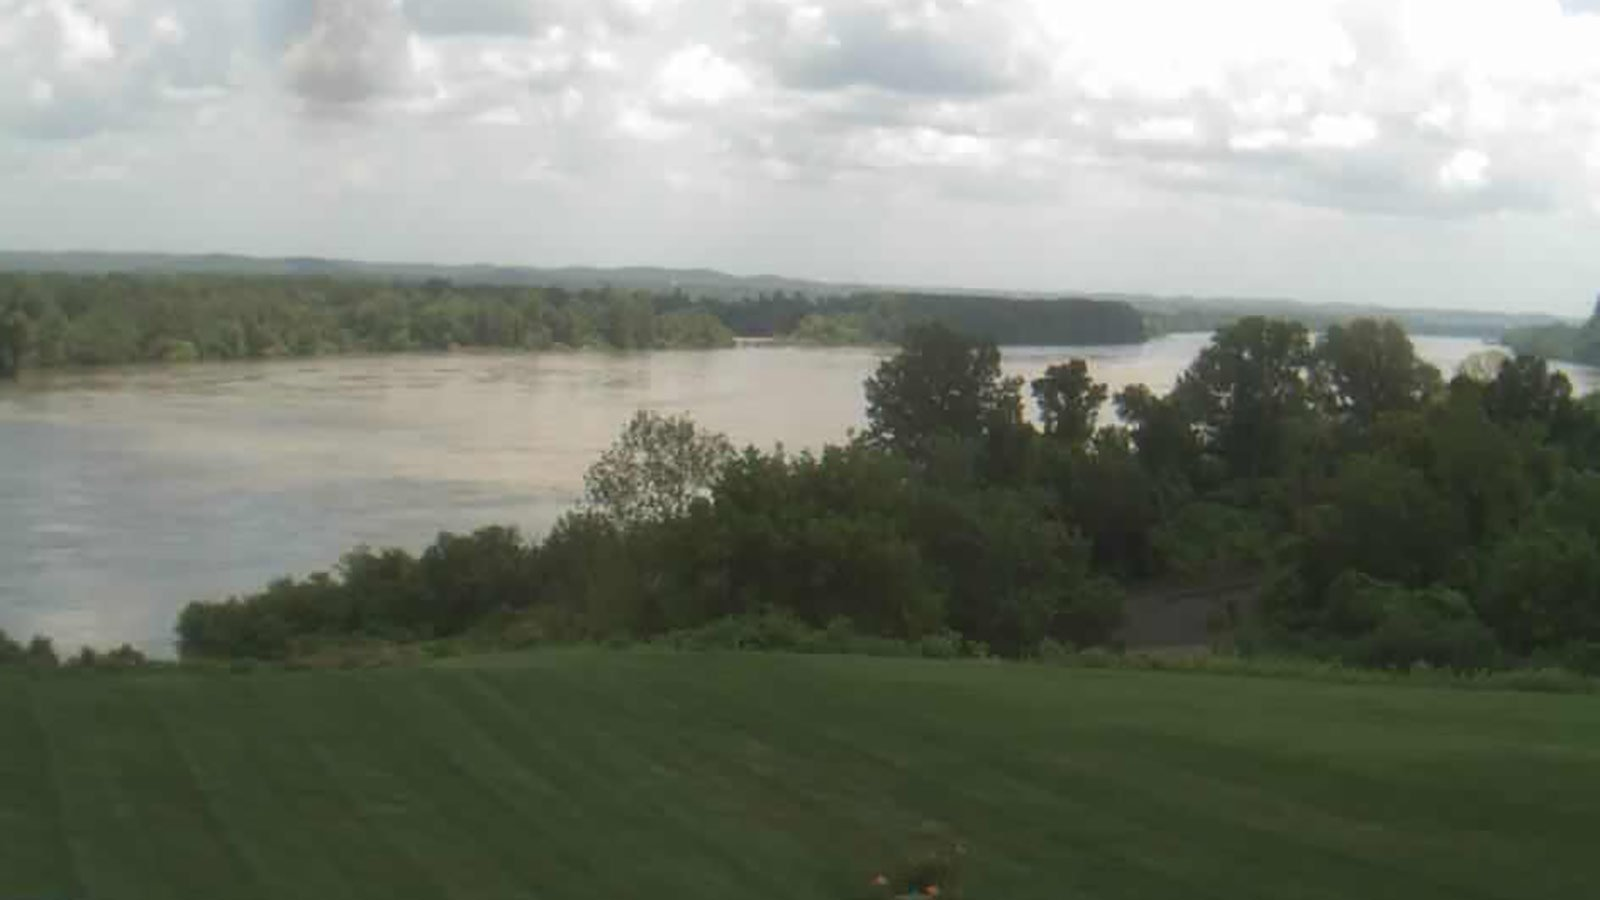 With any Midwestern rainfall this summer, the Missouri River